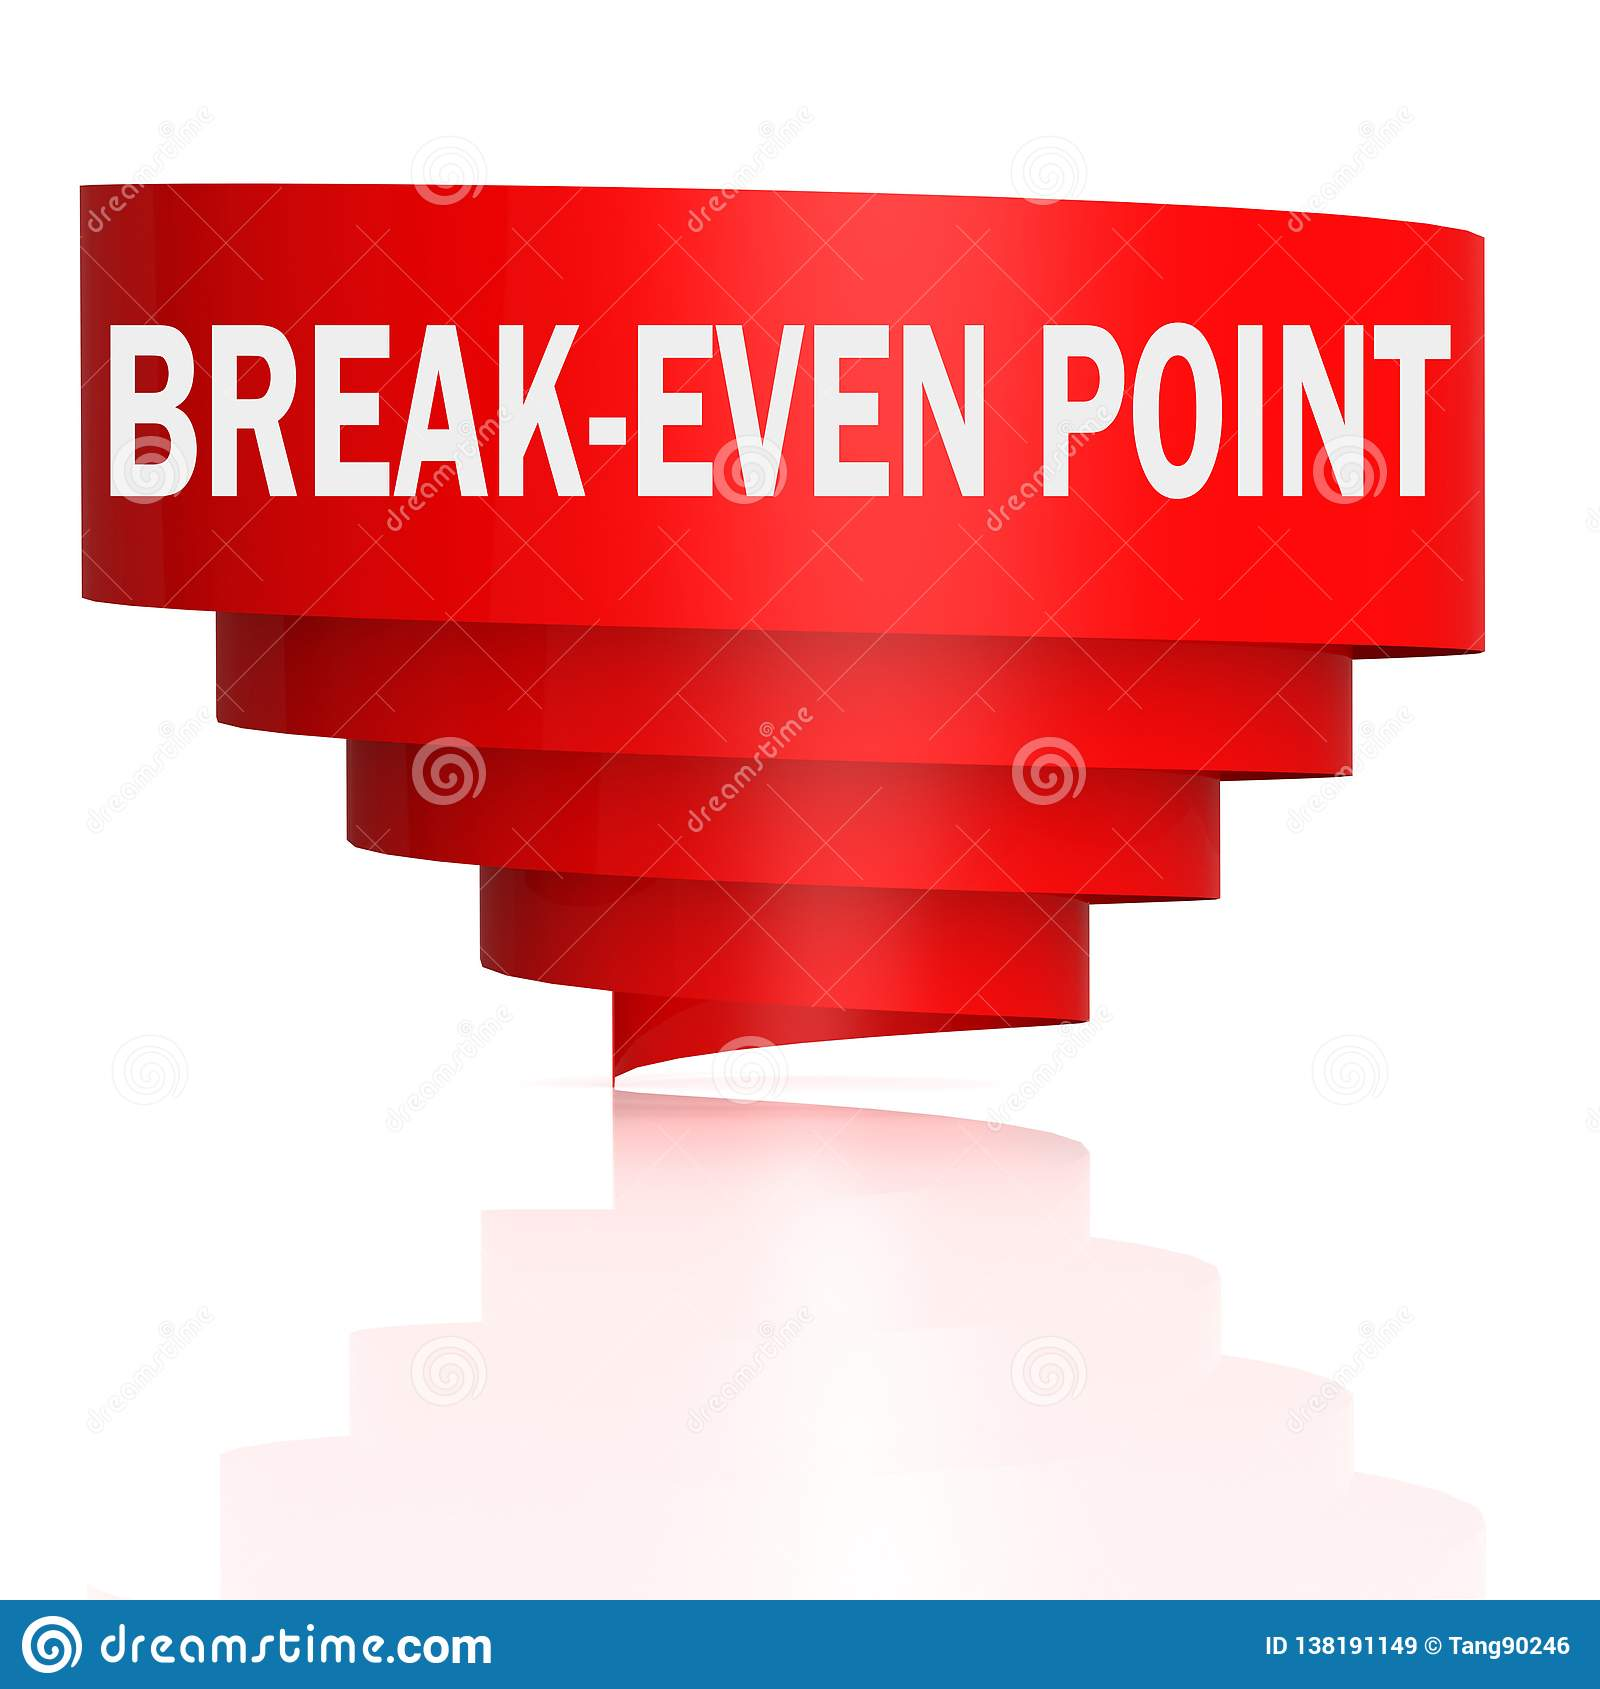 Break-even point word with curve banner